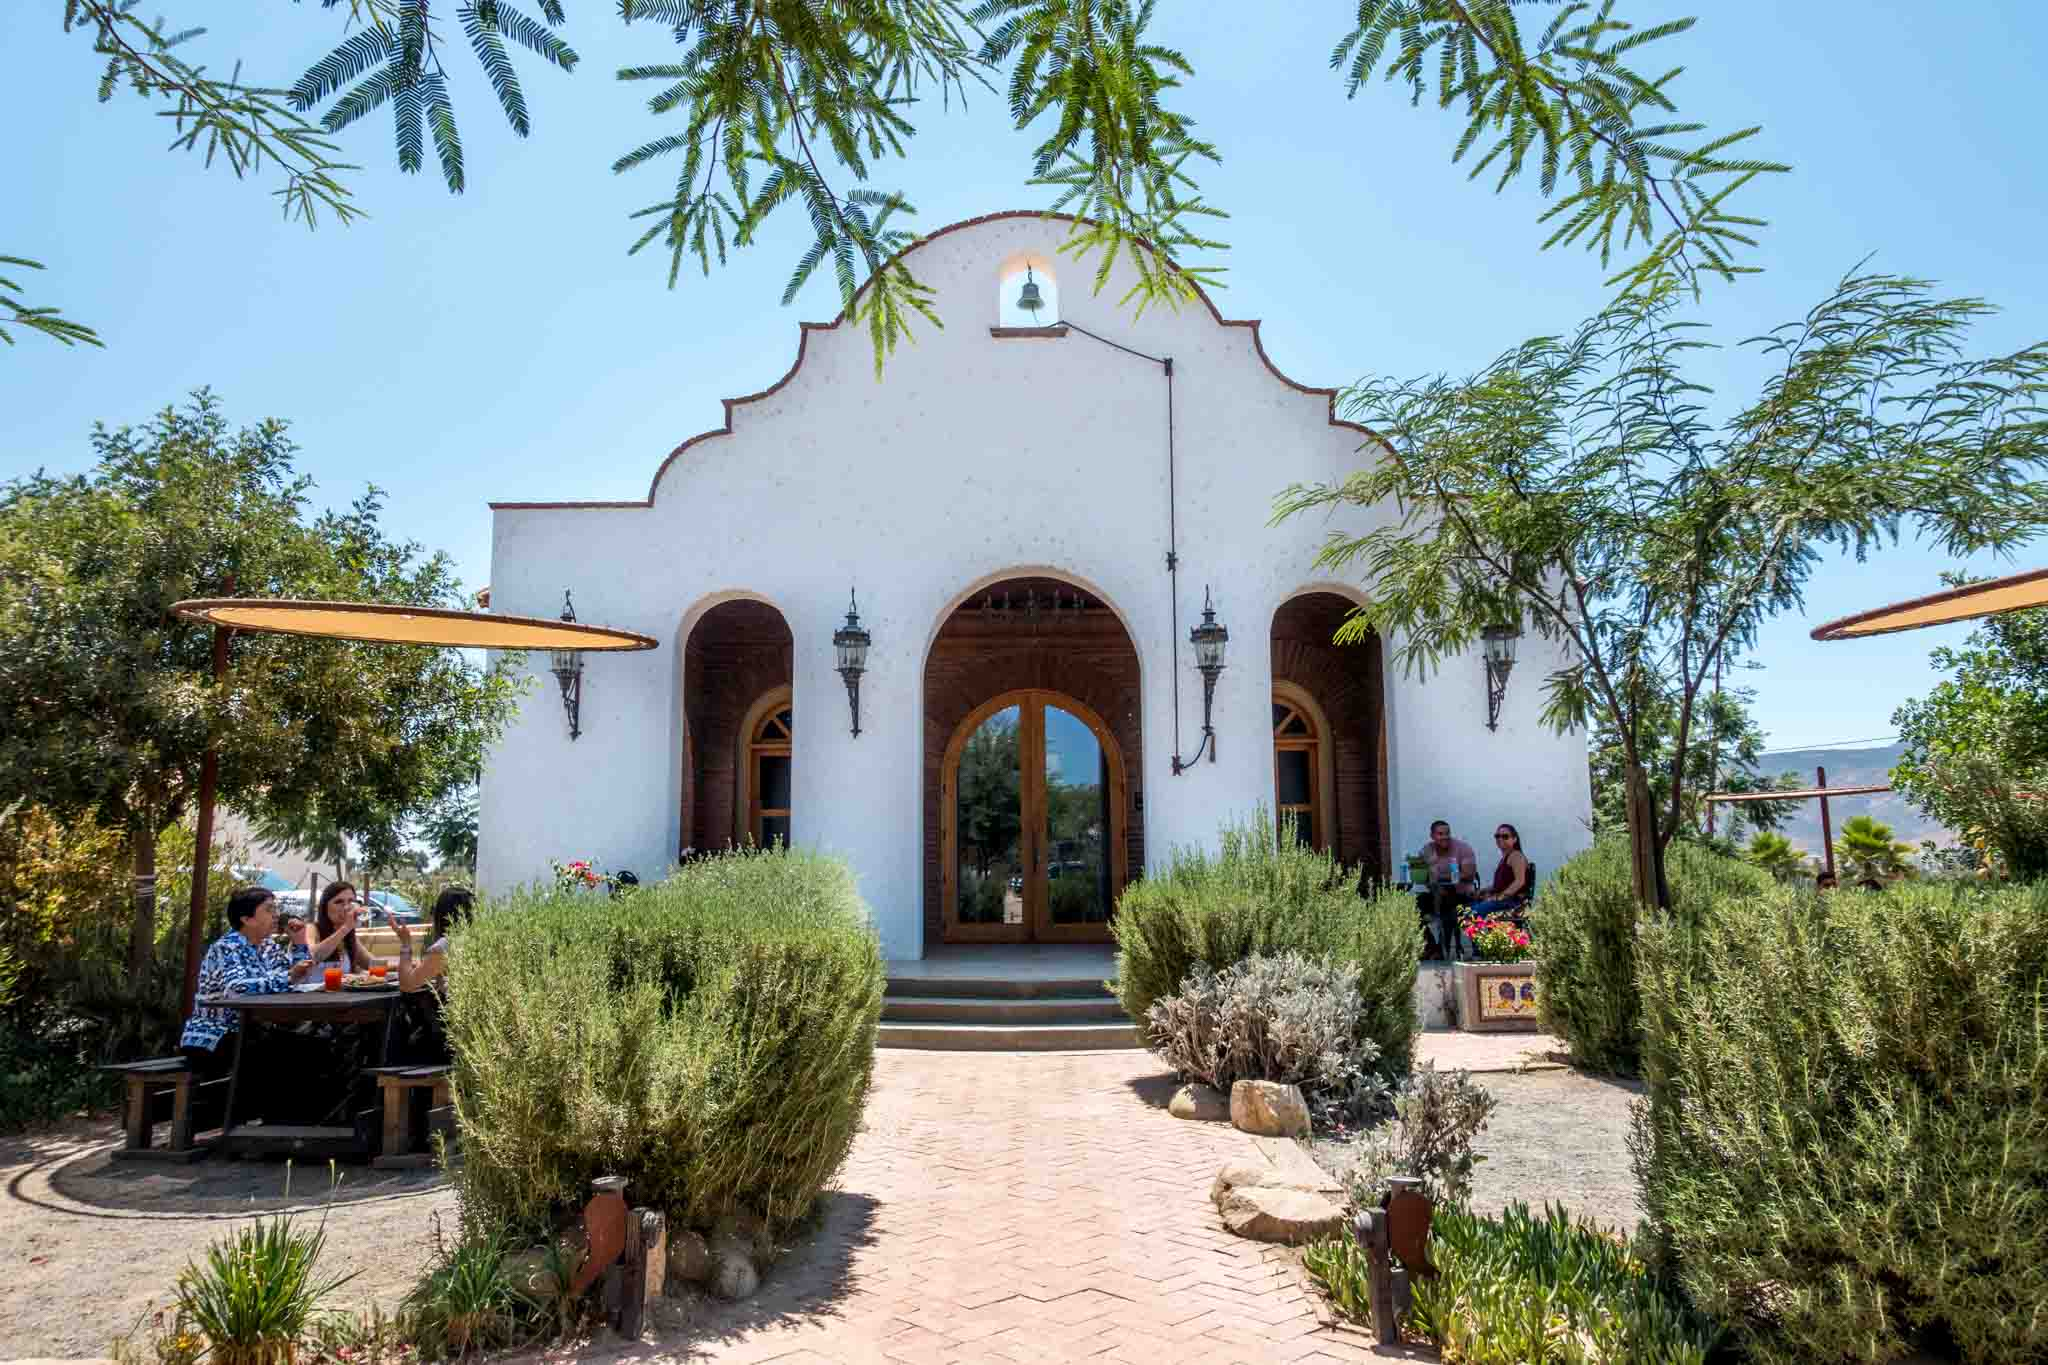 The unique architecture at the Adobe Guadalupe winery in Baja